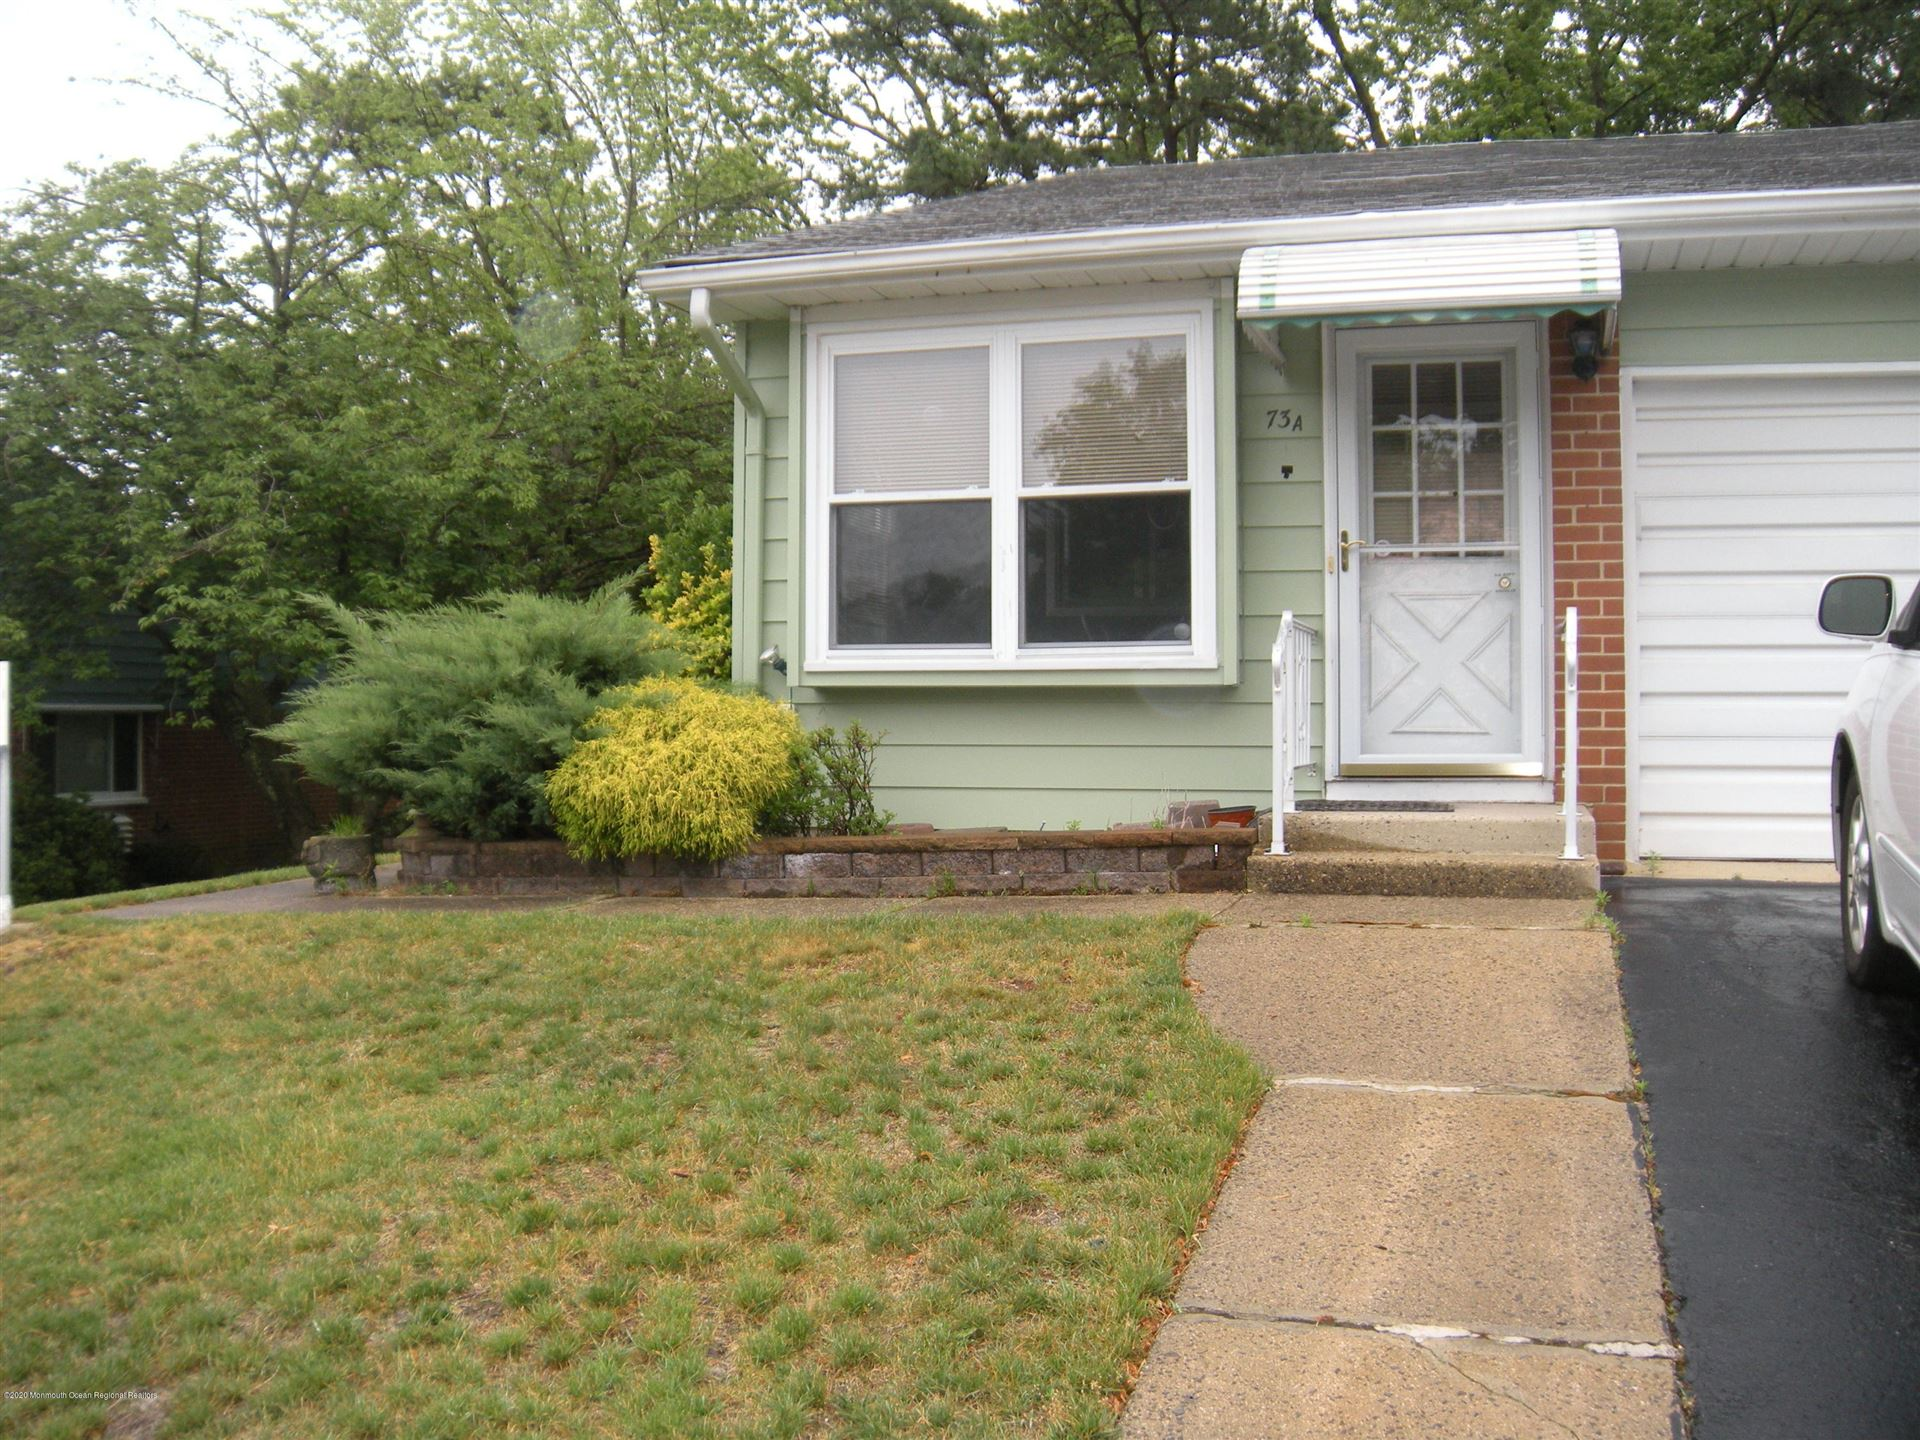 73 Franklin Lane #A, Whiting, NJ 08759 - #: 22019987